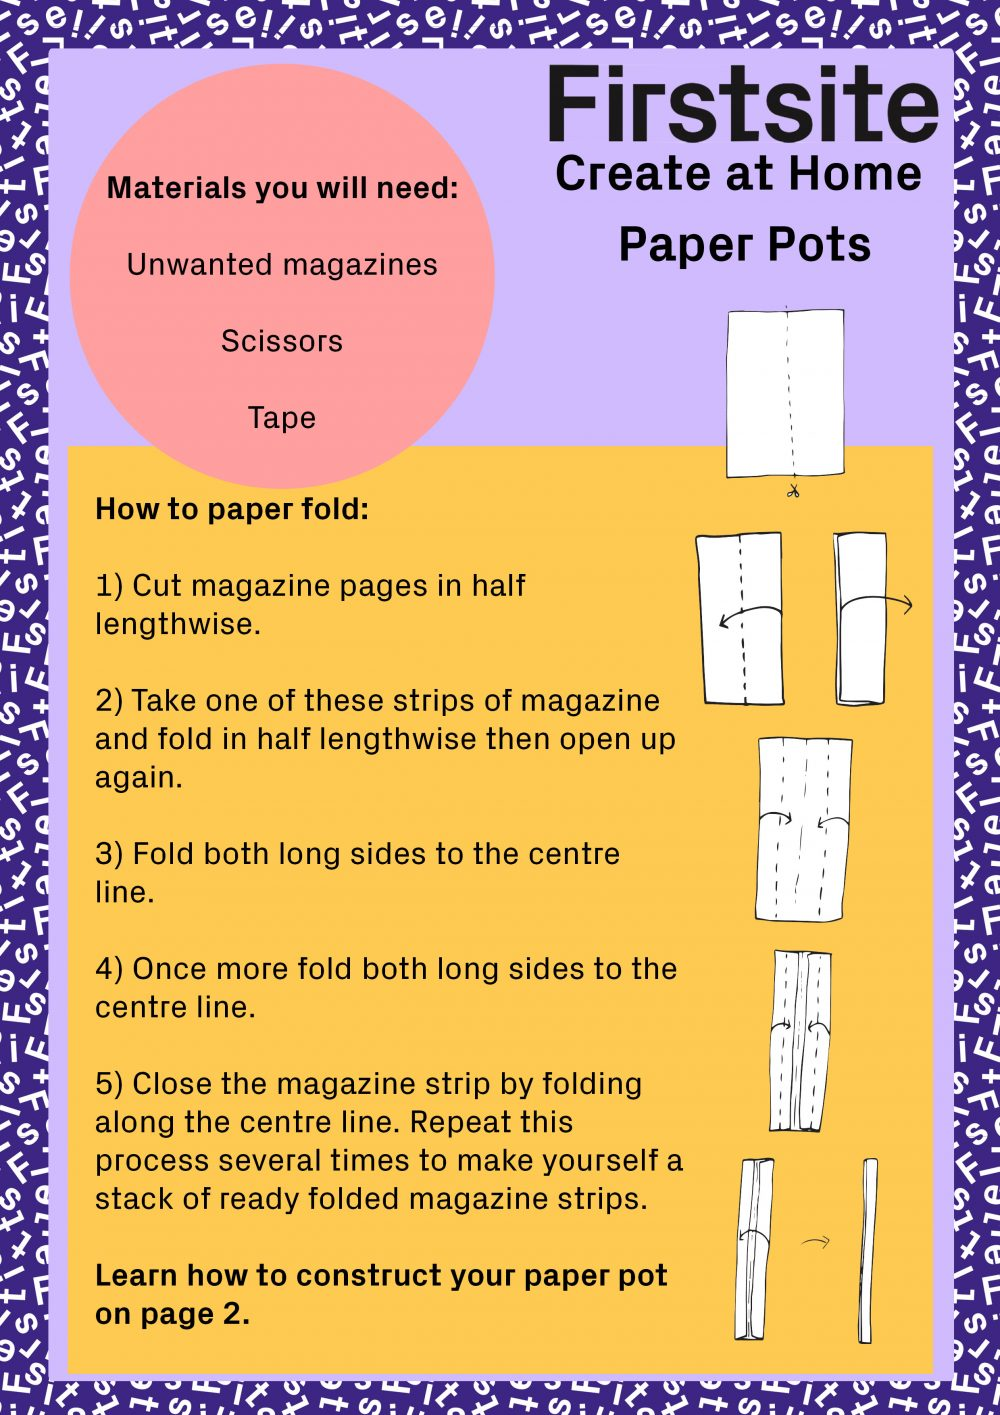 Create at Home Paper pot making activity instructions - 1 of 2